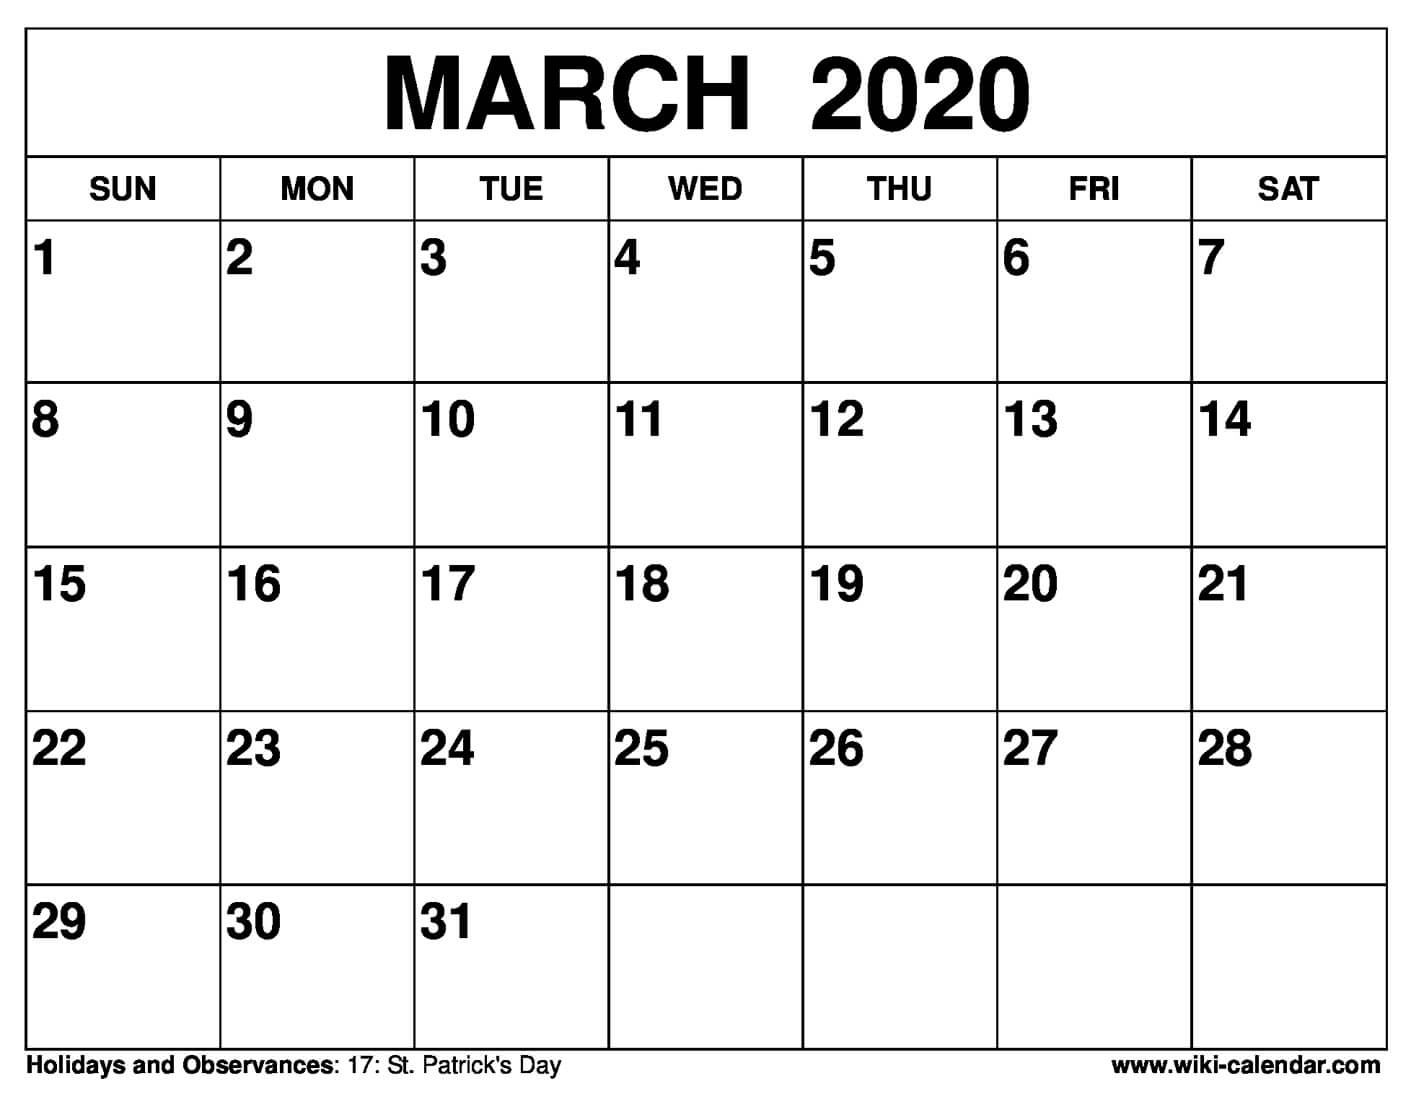 photograph about Calendar March Printable called Absolutely free Printable March 2020 Calendar